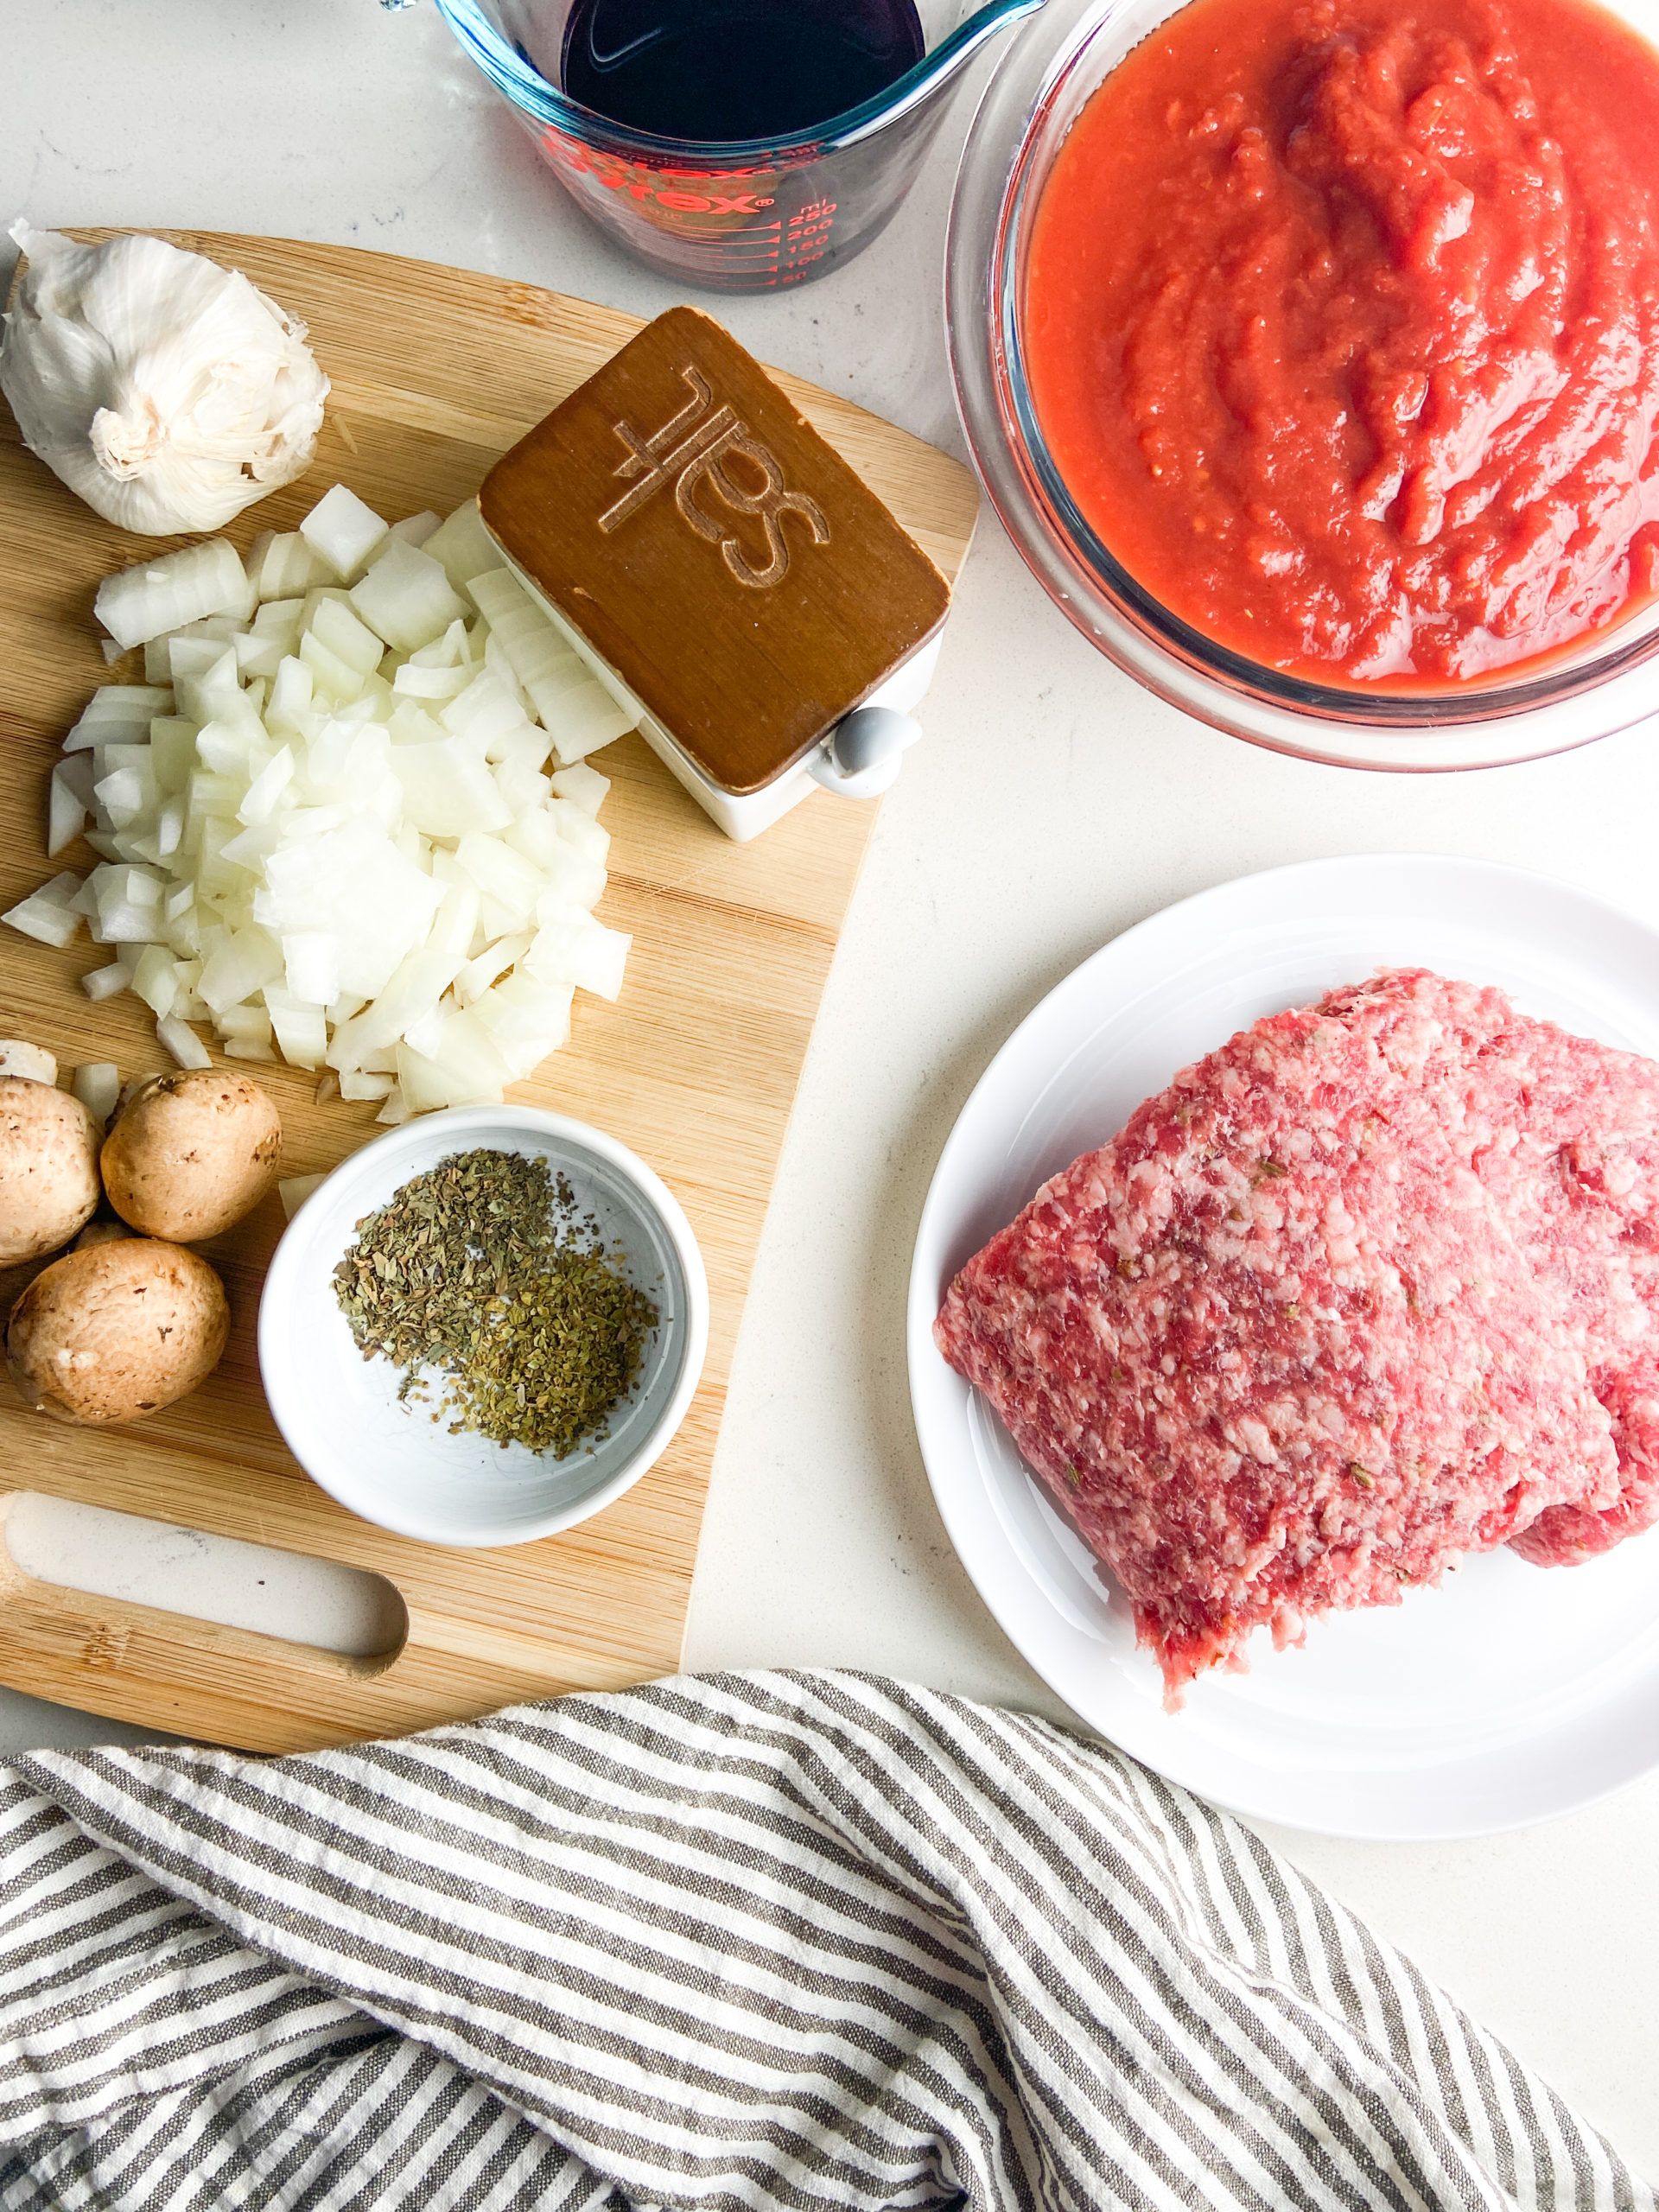 Overhead photo of ingredients for spaghetti with meat sauce.